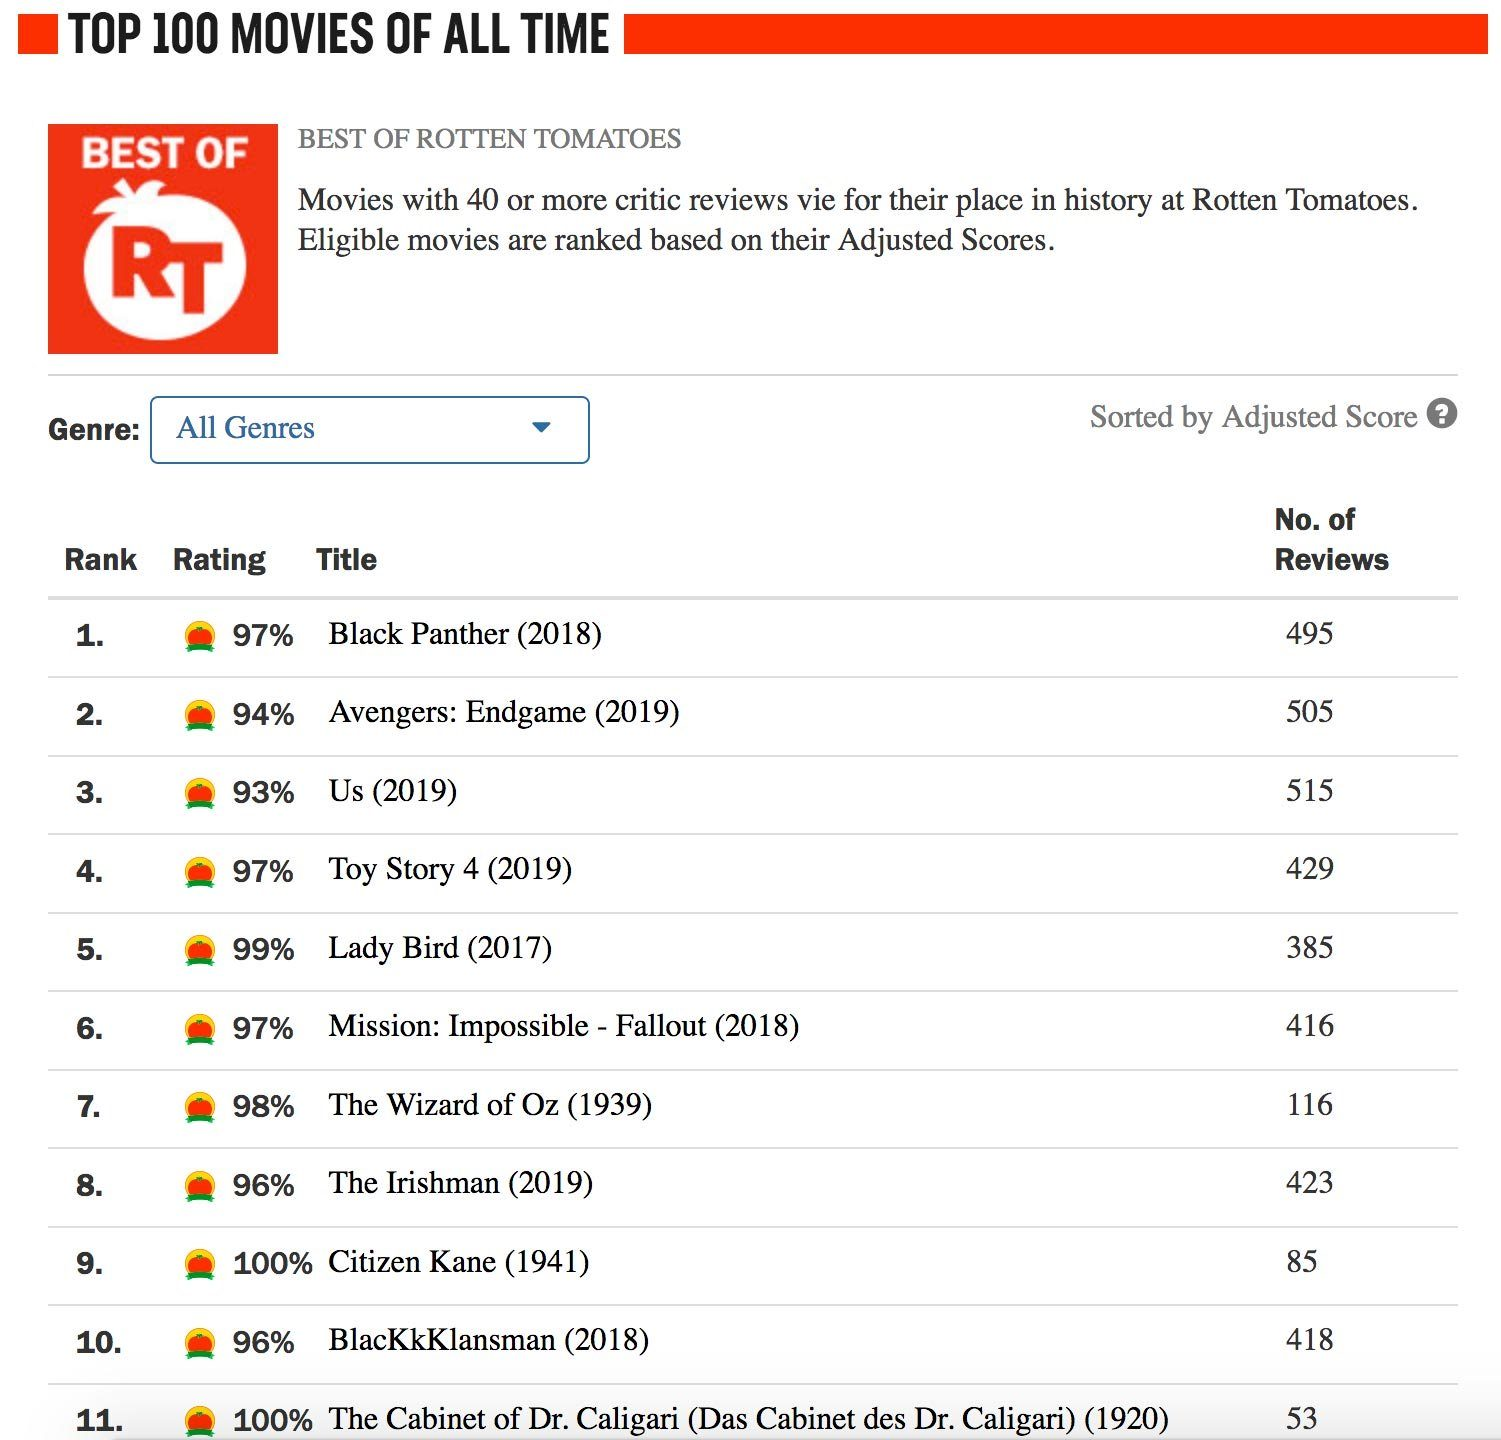 top 100 movies of all time according to rottentomatoes